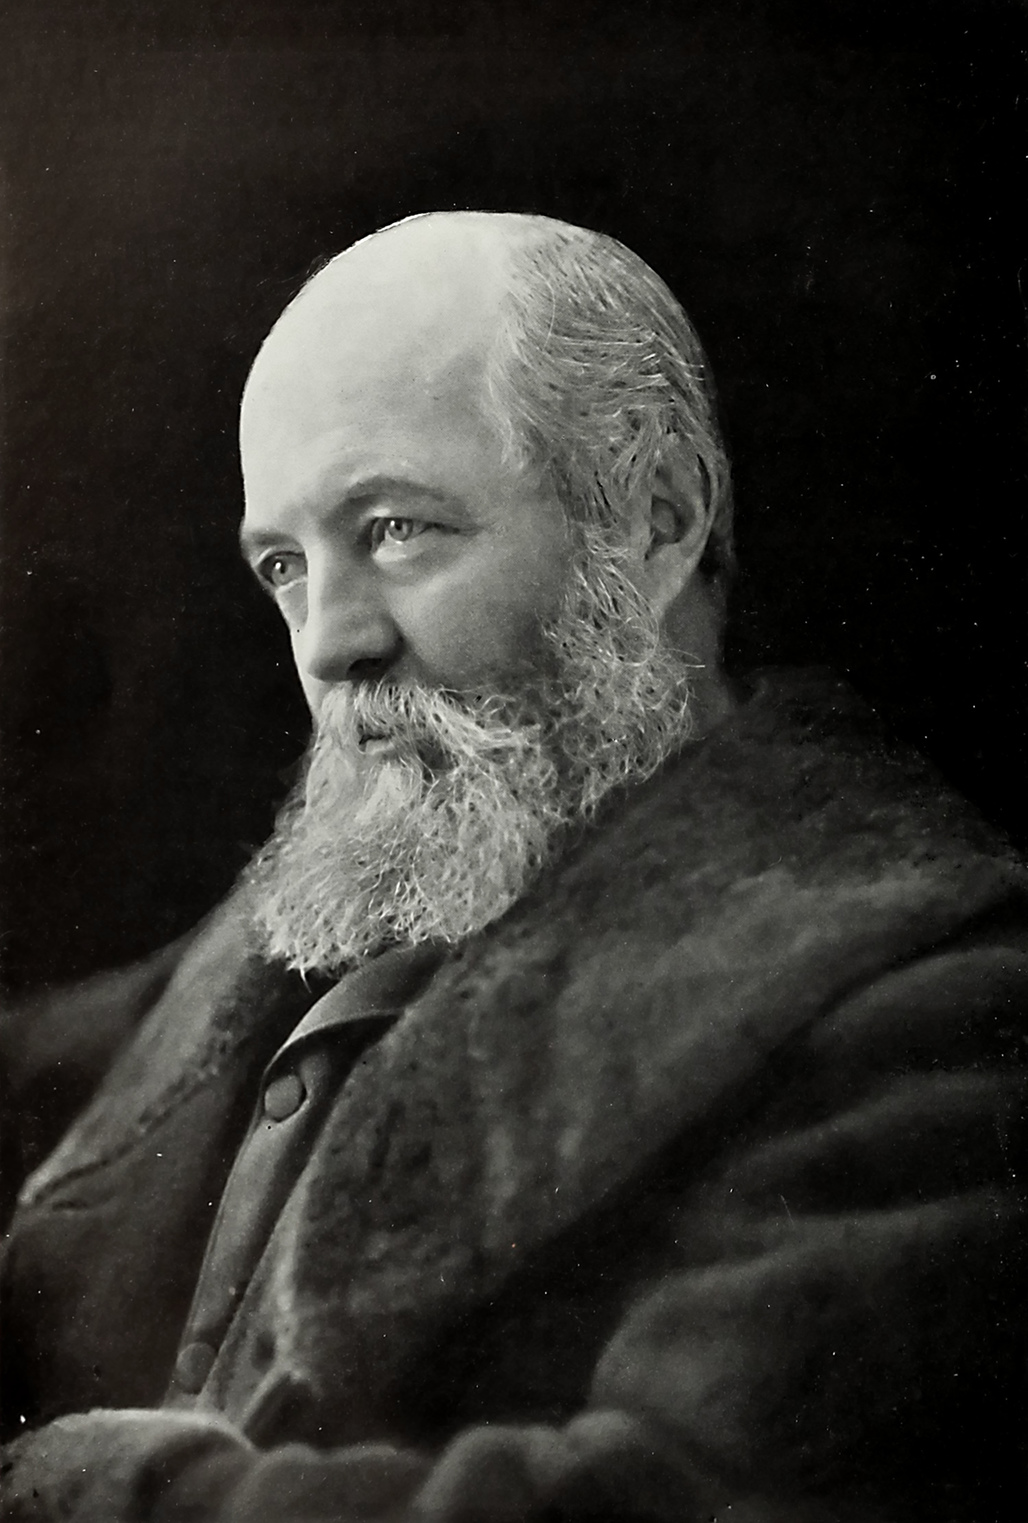 Frederick Law Olmsted. Image via wikimedia.org